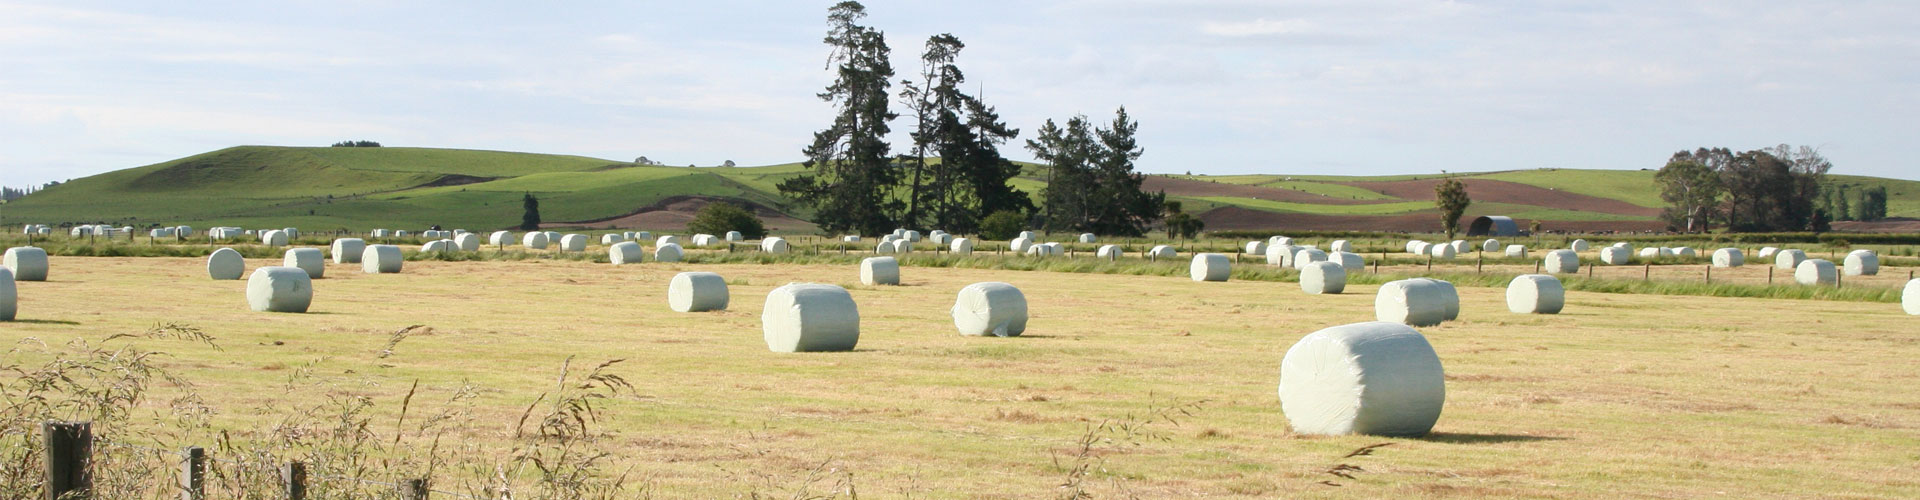 The 5 star wrapping film for silage bales